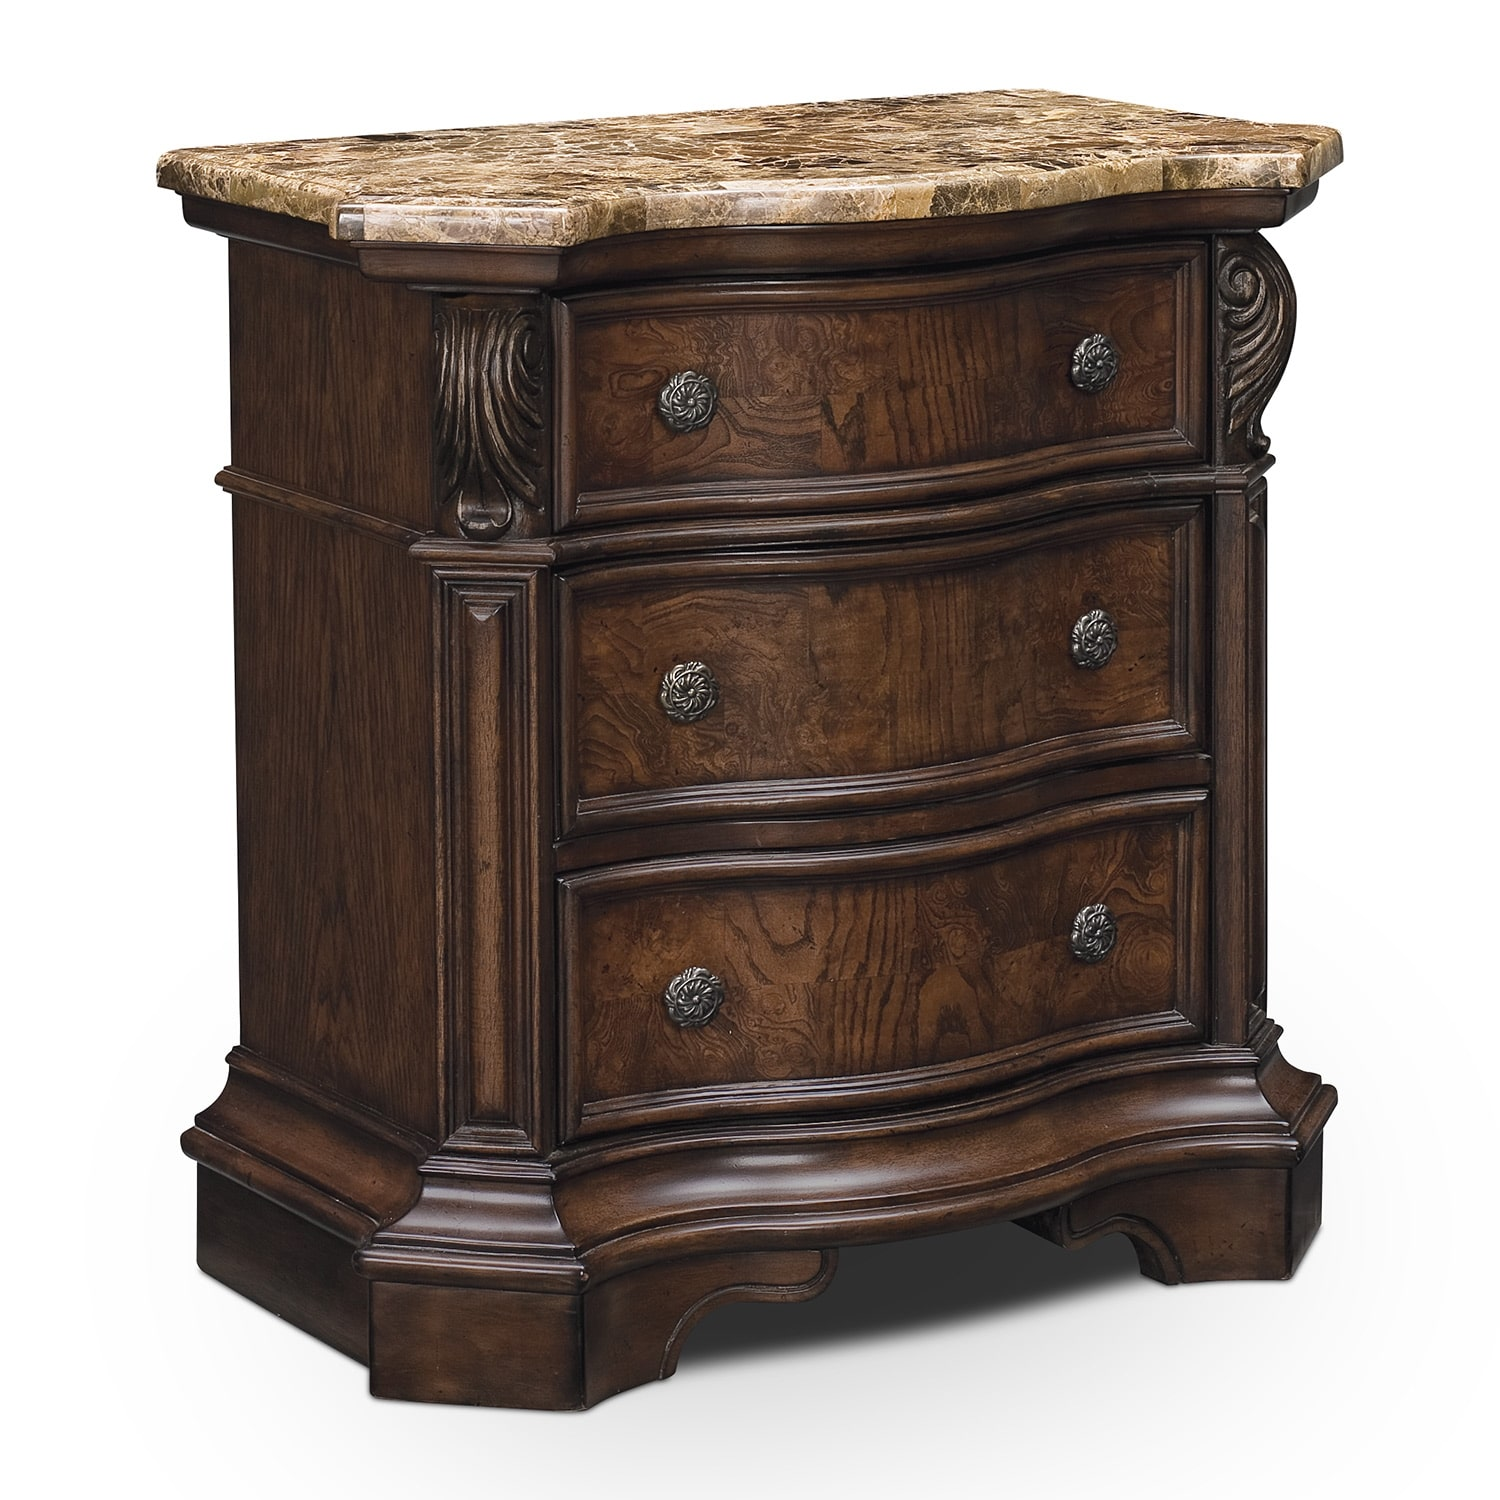 Bedroom Furniture - Monticello Pecan Nightstand